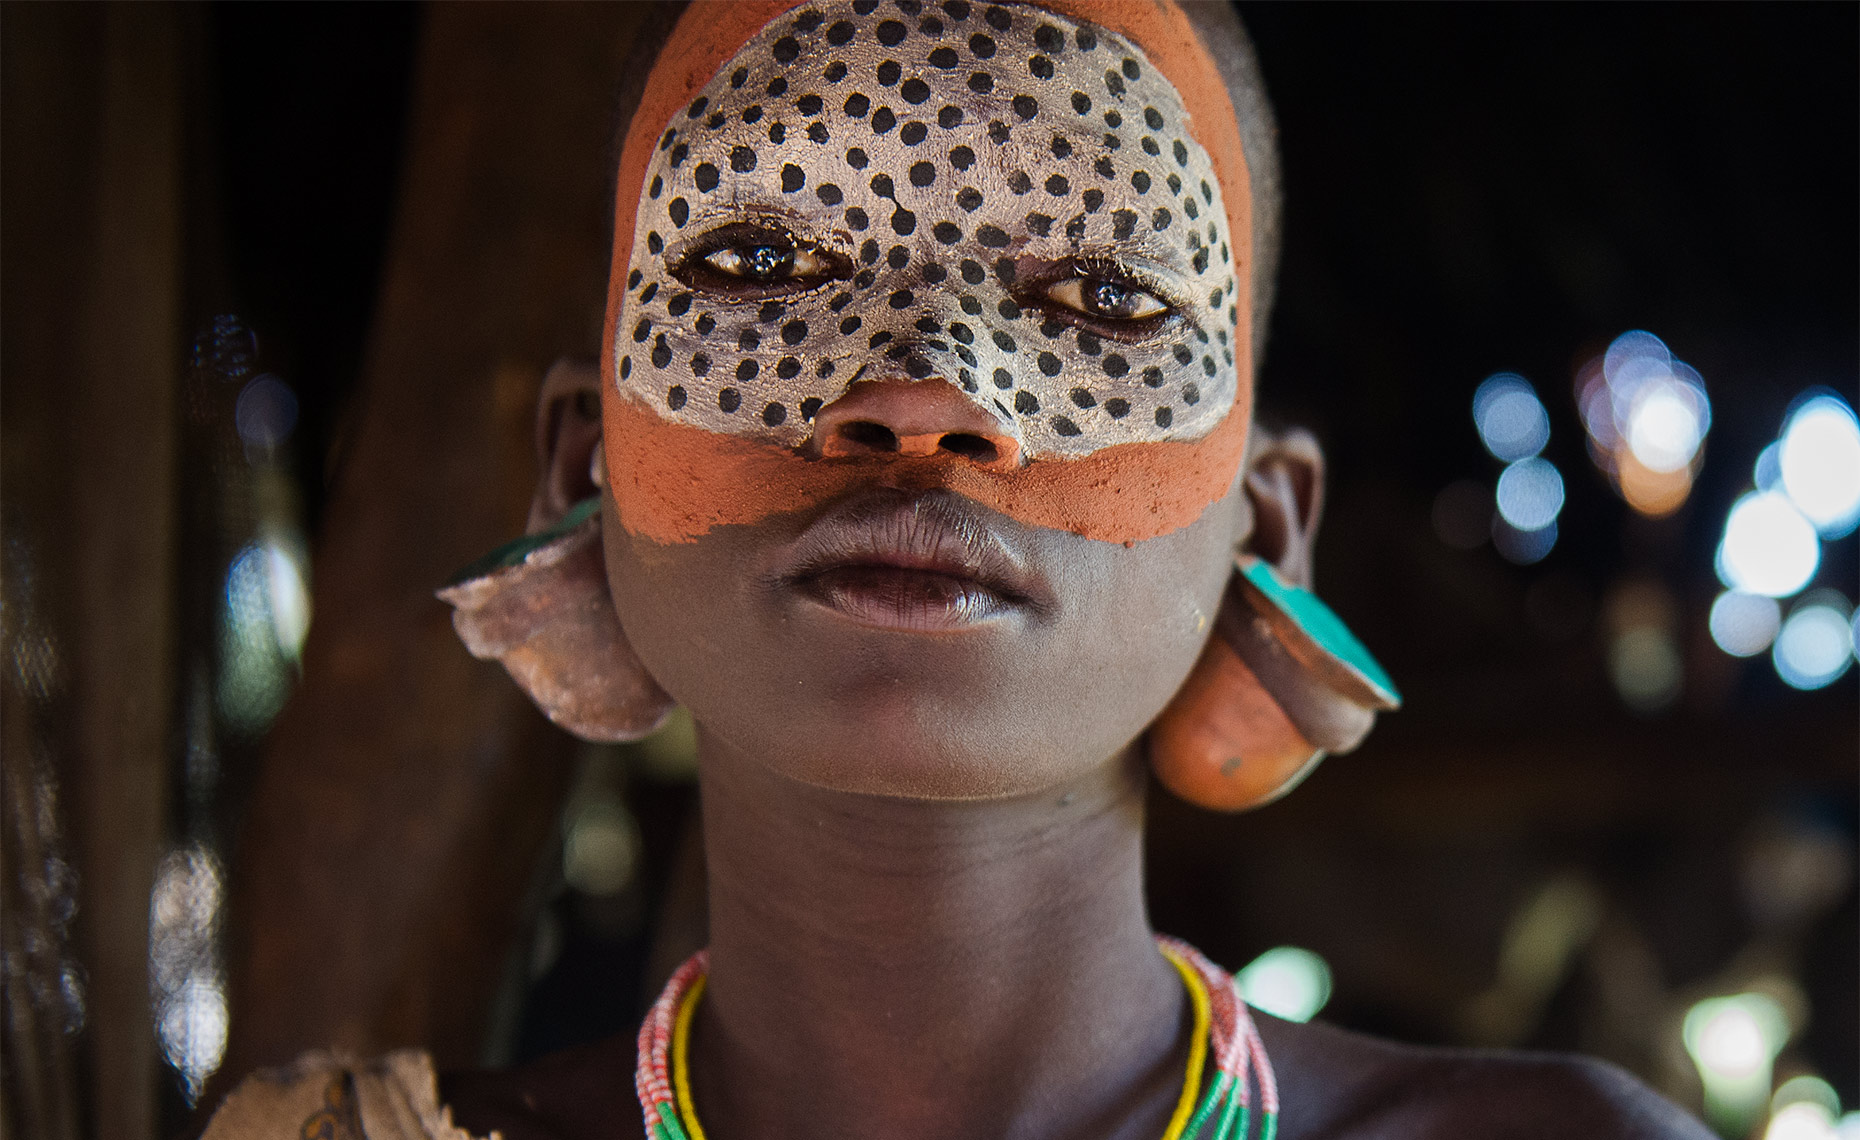 suri tribe girl with face paint at omo park ethiopia